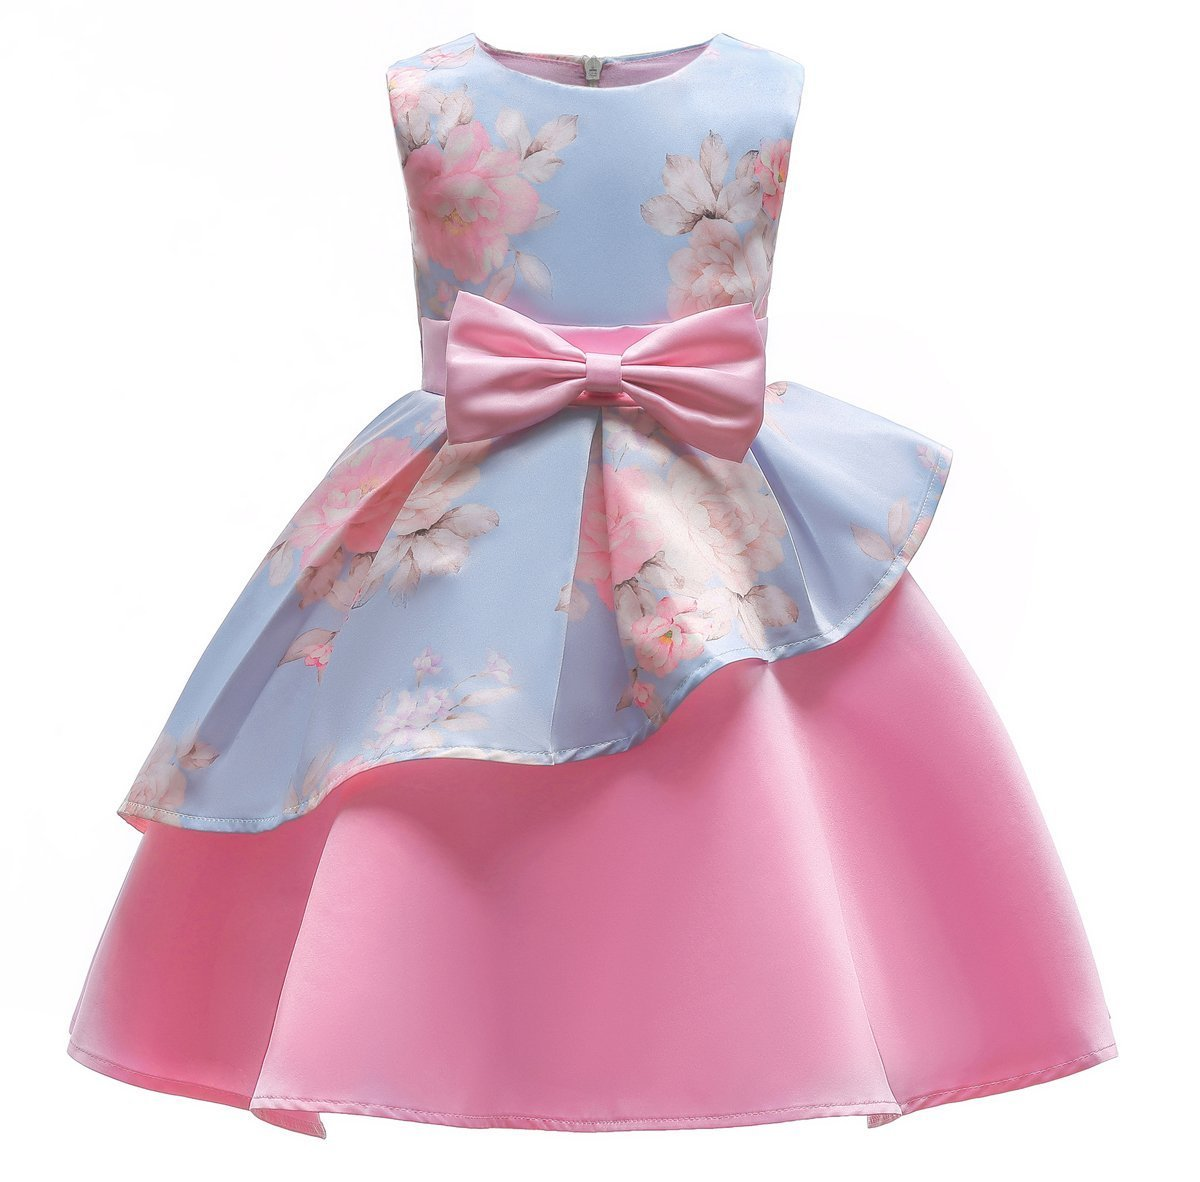 Big Girl Dresses Size 10-12 Wedding Party Prom Special Occasion Tops 7-16 Years Lace A Line Girls Bridesmaid Tutu Dresses Children Birthday Princess Pageant Elegant Gift Beauty Cute Pink 140